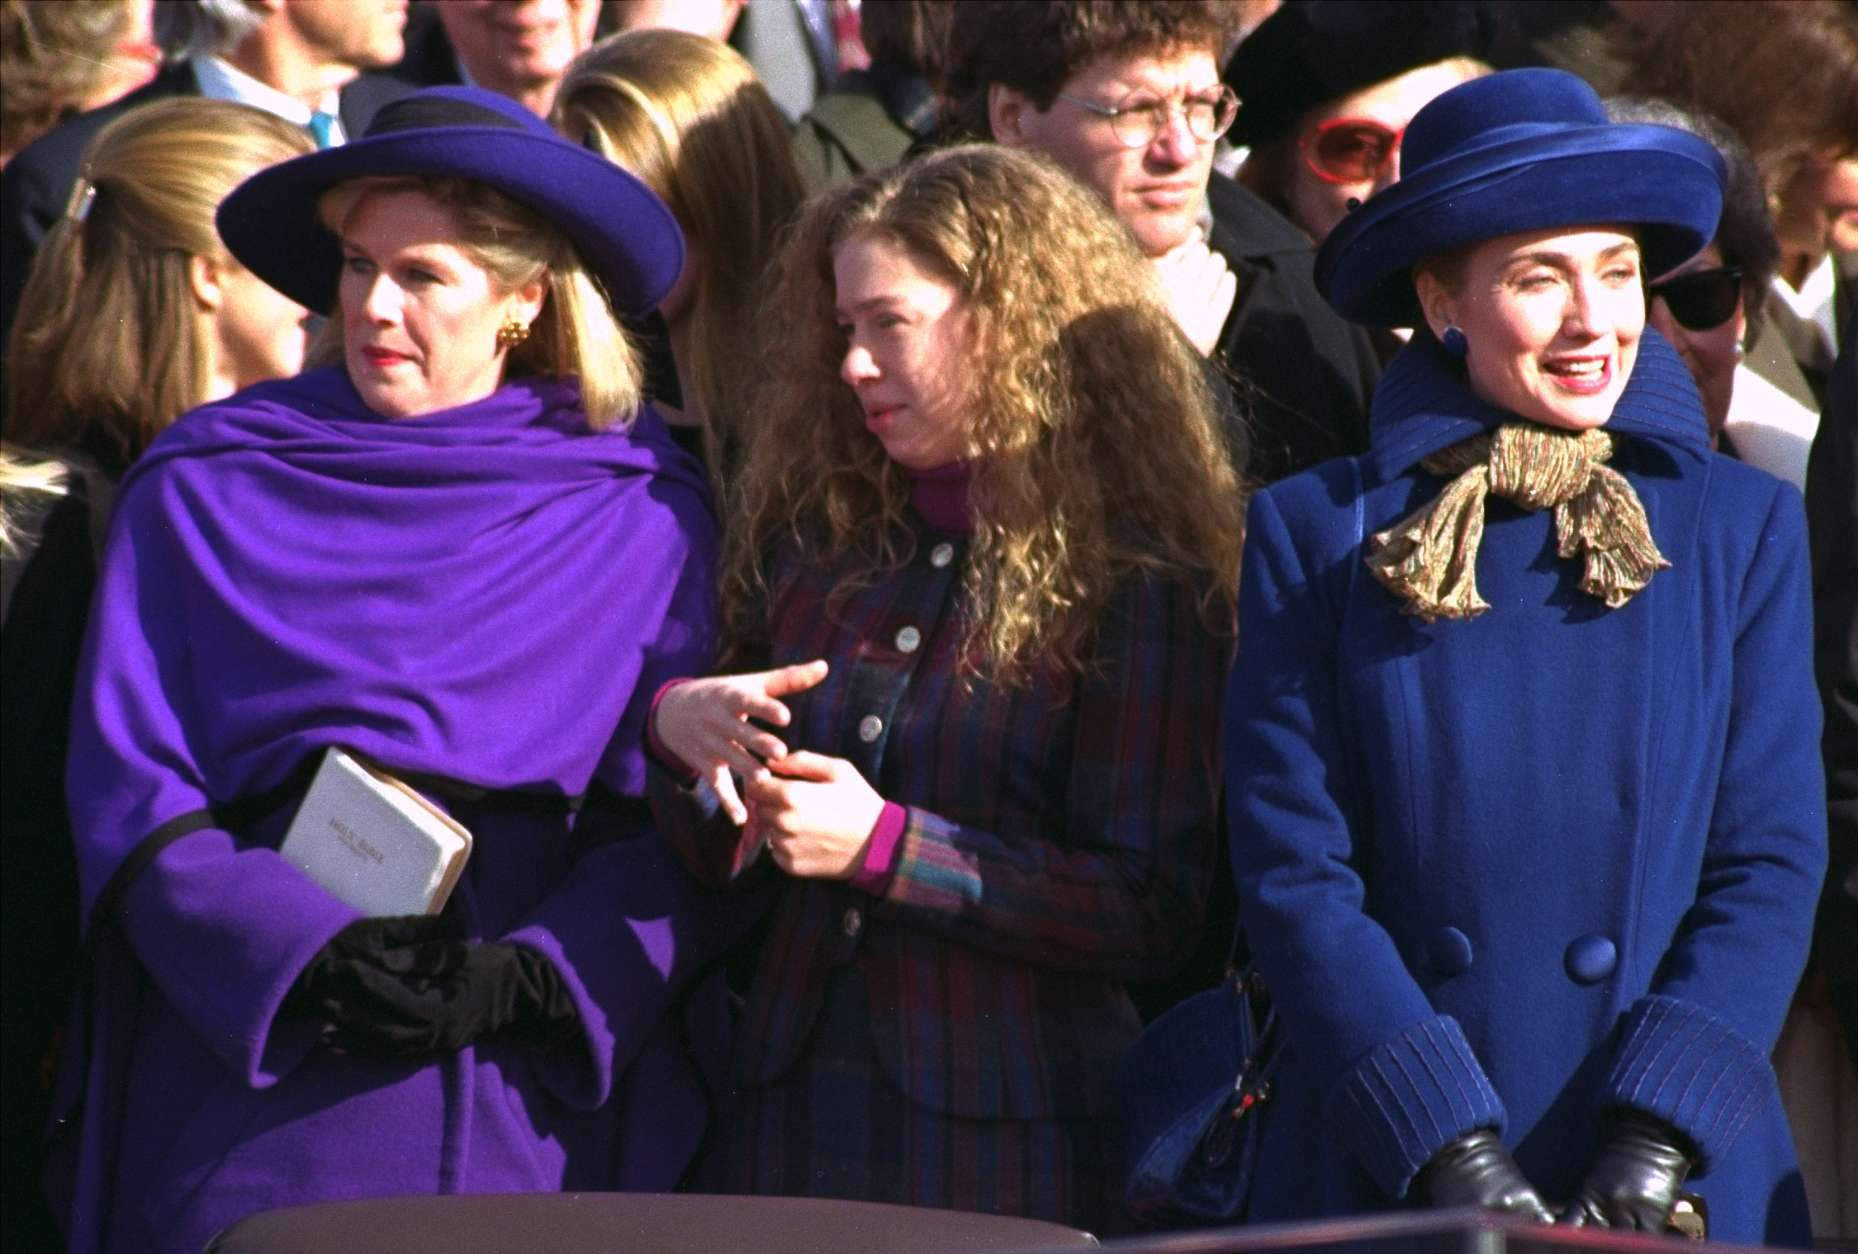 Tipper Gore, wife of Vice President Gore, left, Chelsea Clinton, daughter of President Clinton, center, and Hillary Clinton, wife of the president, look on during the inaugural ceremony on Capitol Hill Wednesday.  (AP Photo/Ed Reinke)